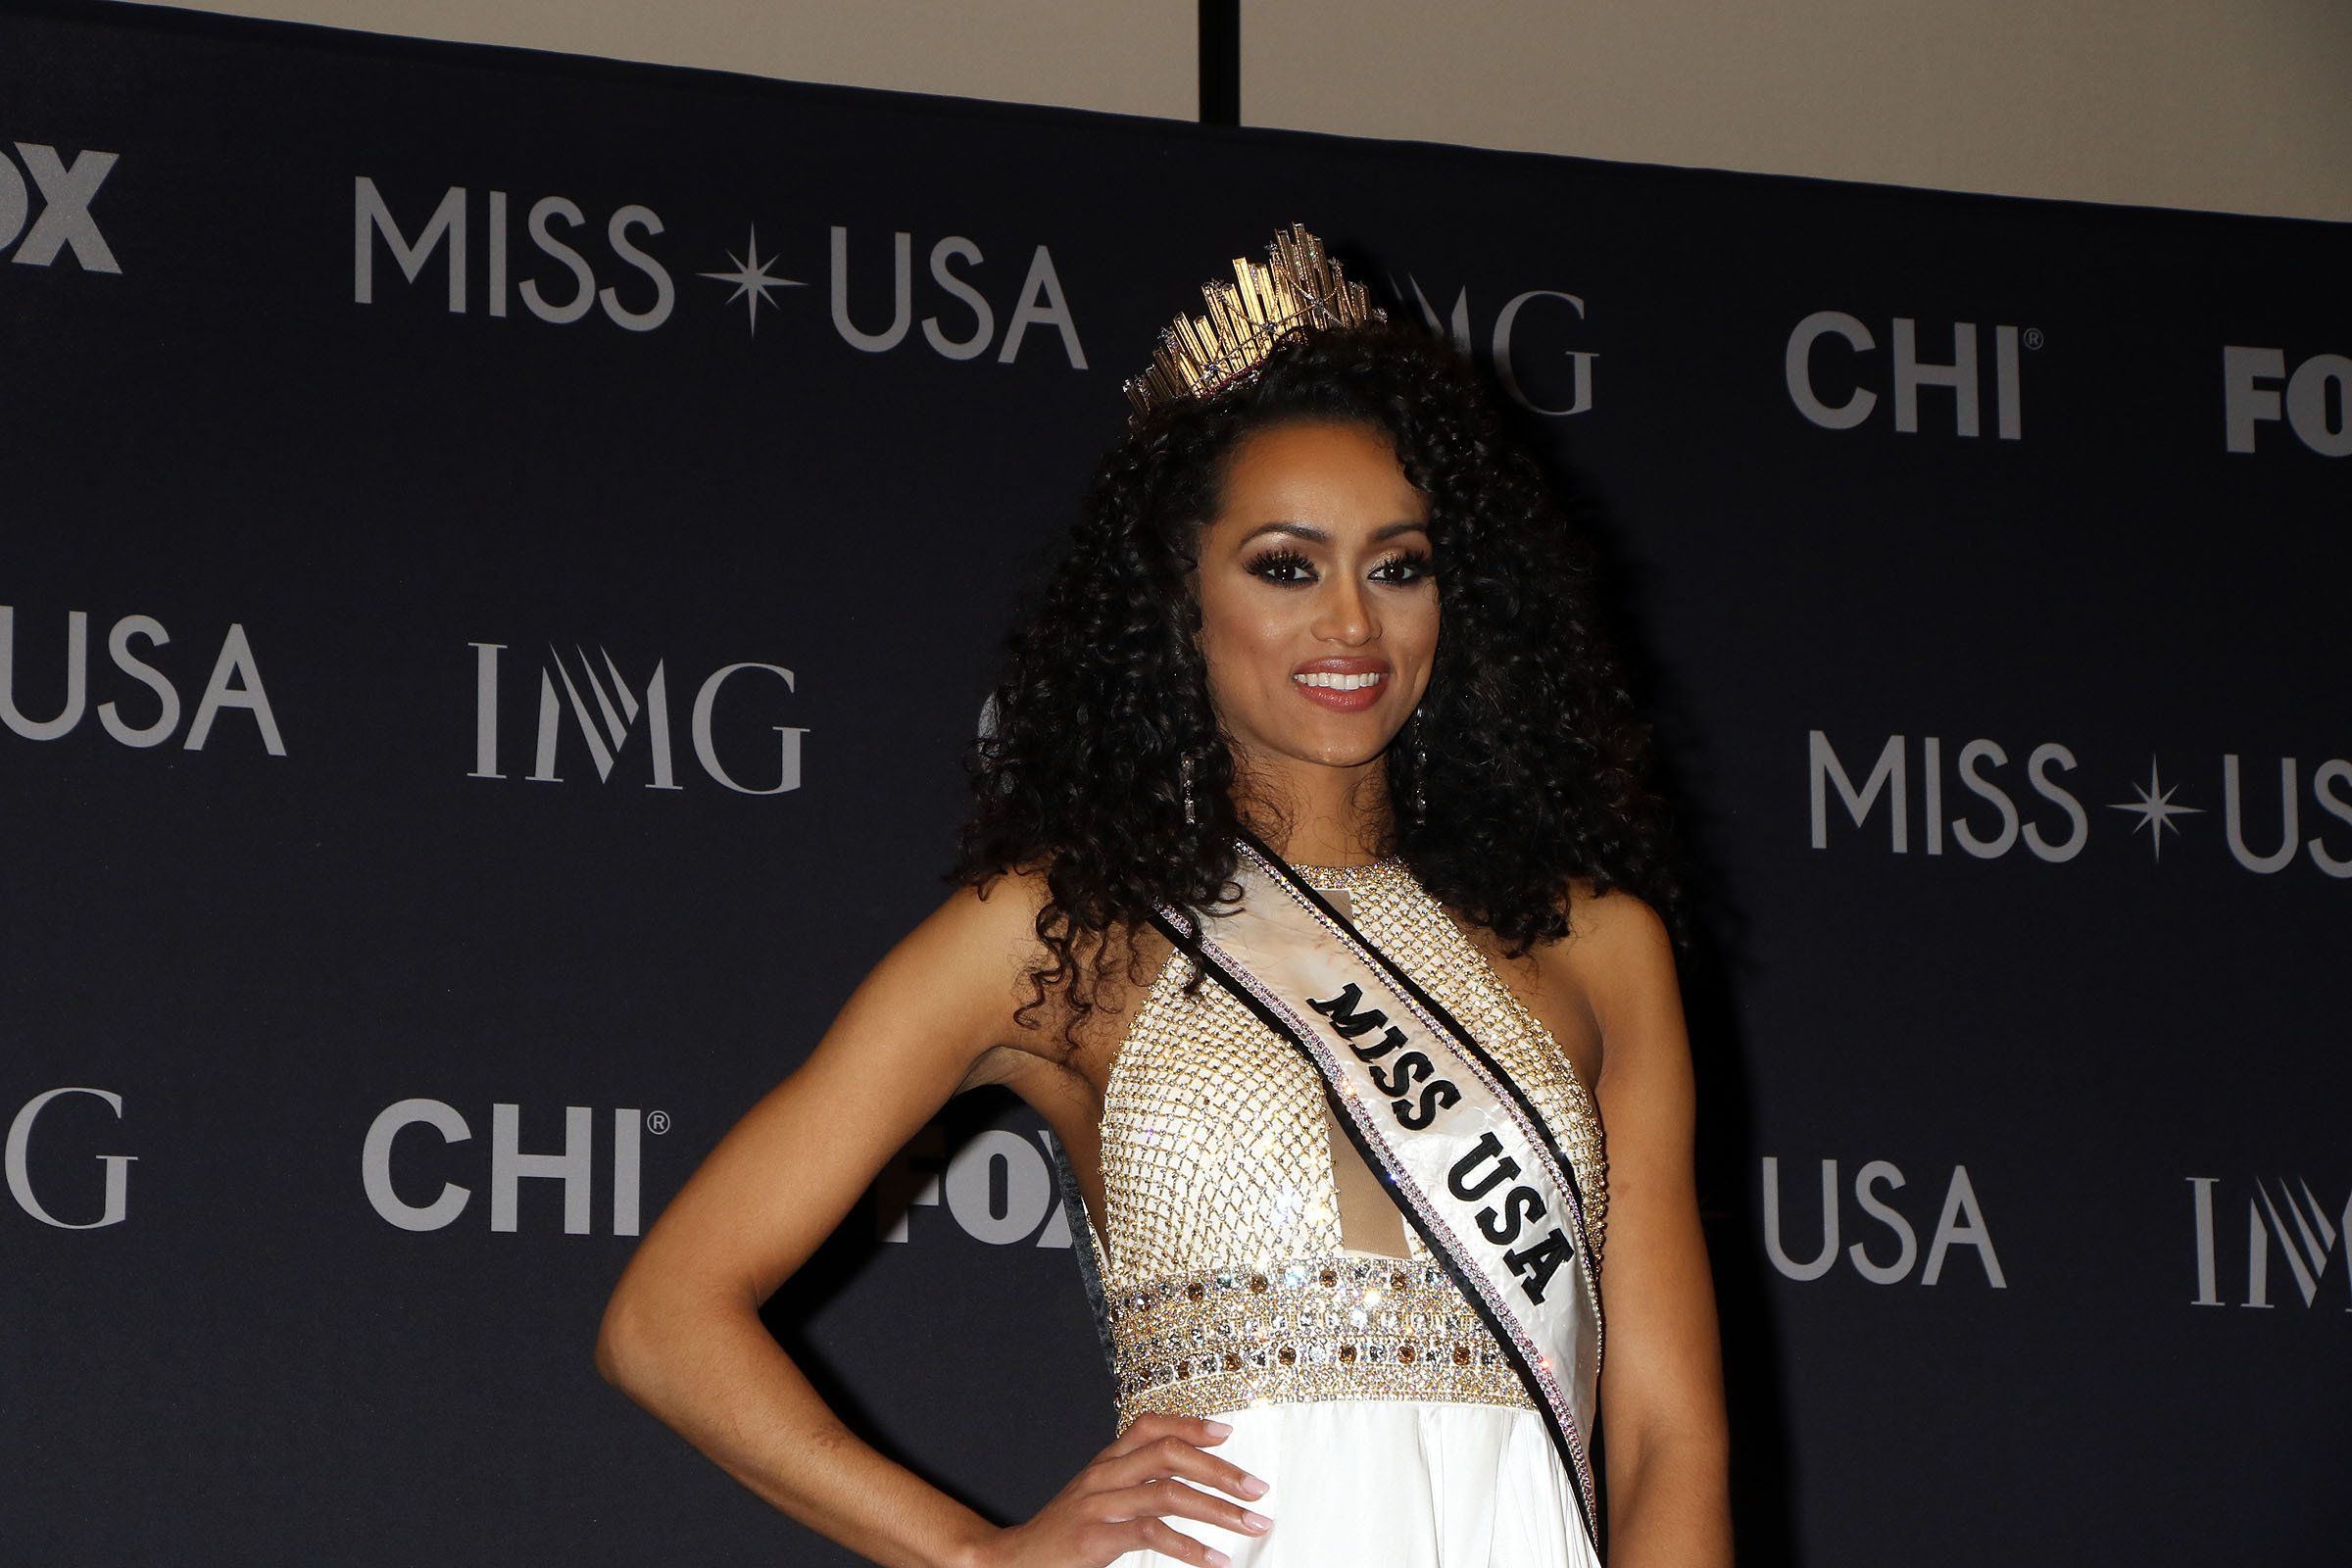 Miss USA 2017 Kara McCullough attends her first press conference as Miss USA 2017